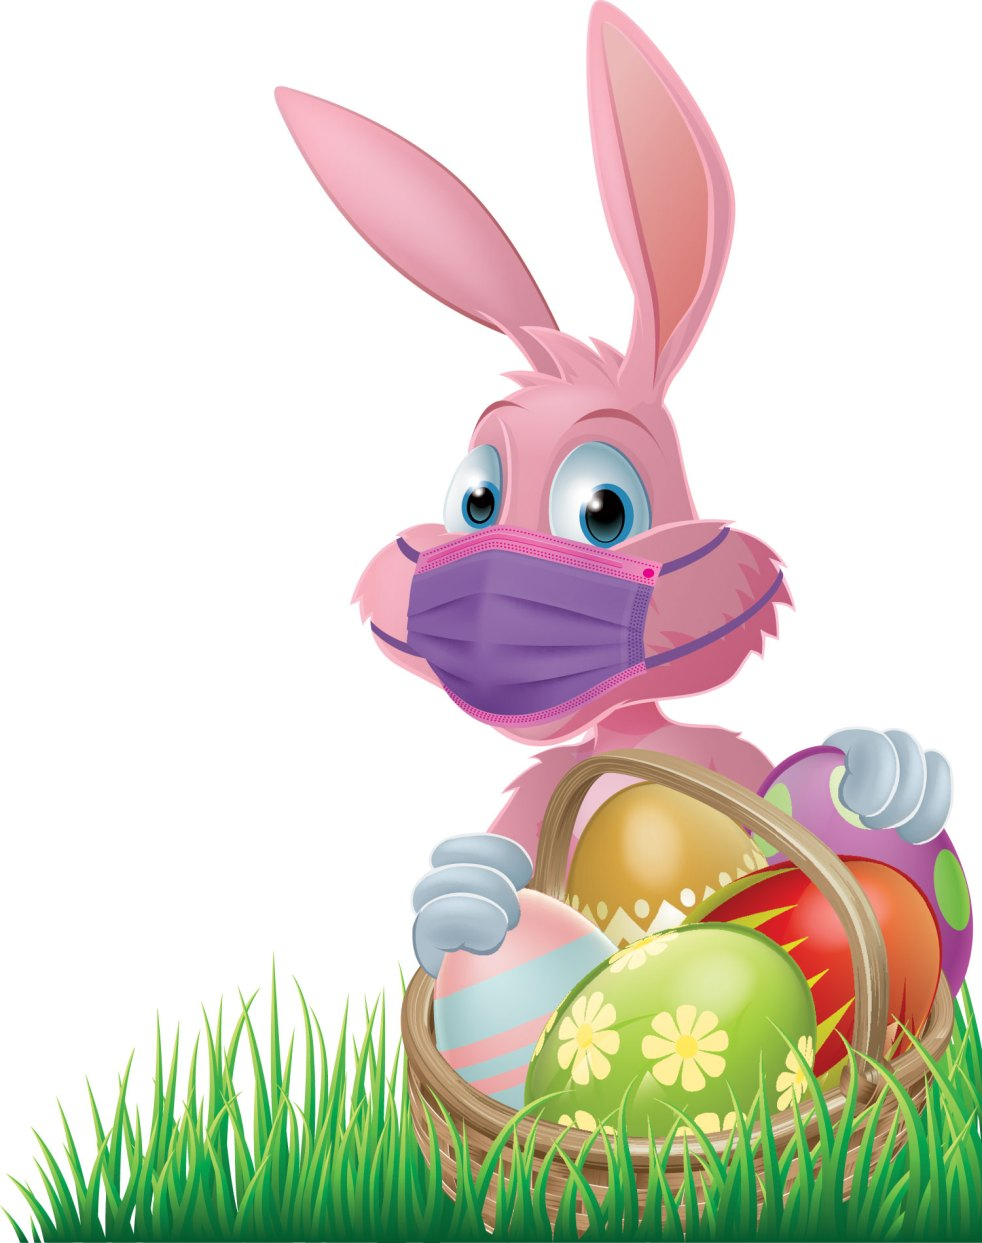 Easter celebrations in the era of social distancing - Holidays have been celebrated differently since the outbreak of COVID-19 in late 2019. Easter was among the first major holidays to be celebrated differently in 2020, and celebrations likely won't return to normal in 2021.